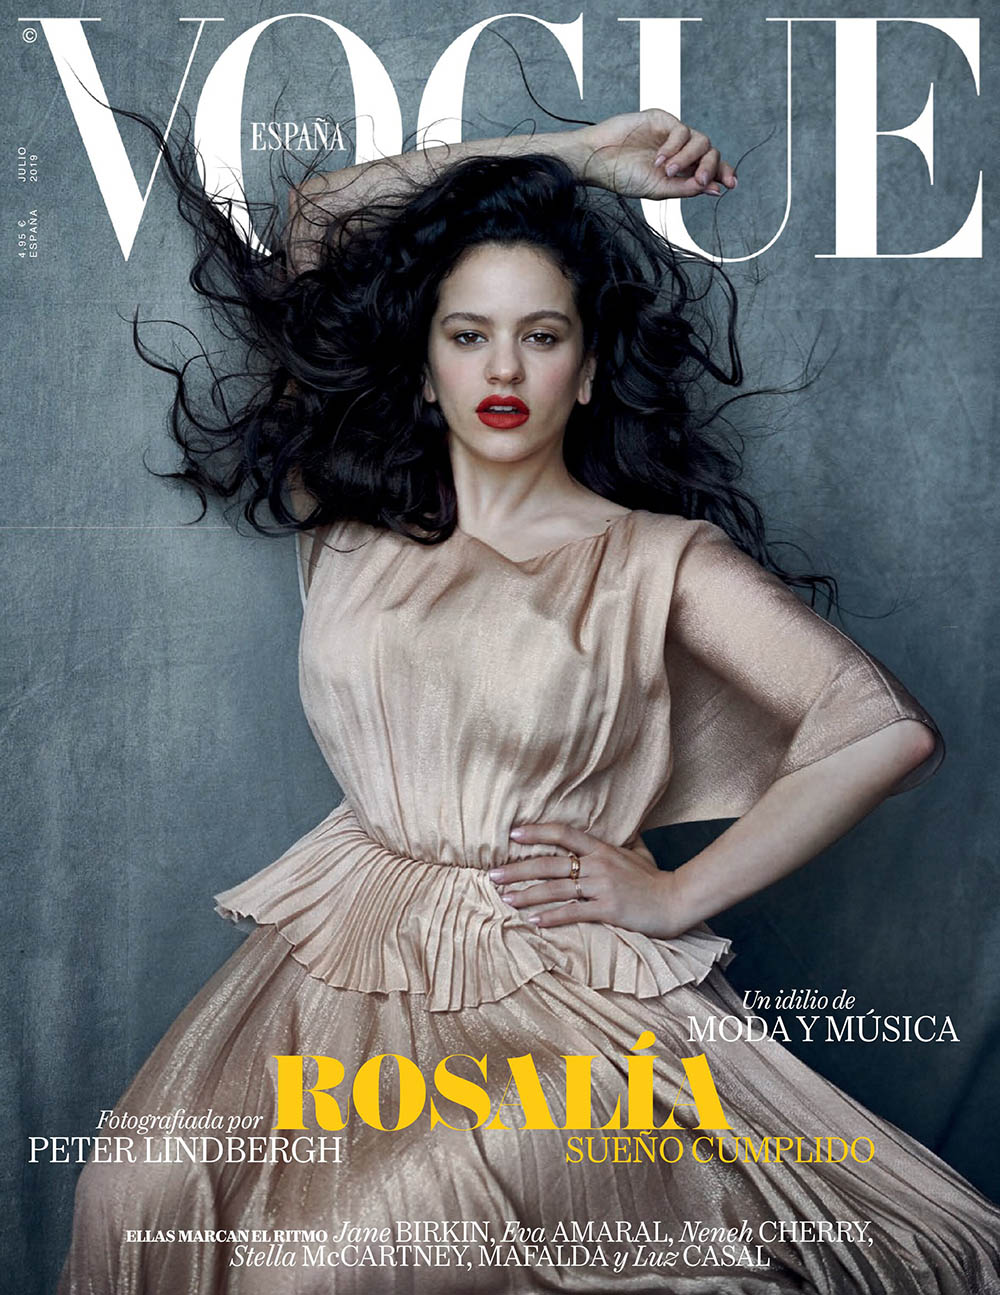 Rosalía covers Vogue Spain July 2019 by Peter Lindbergh